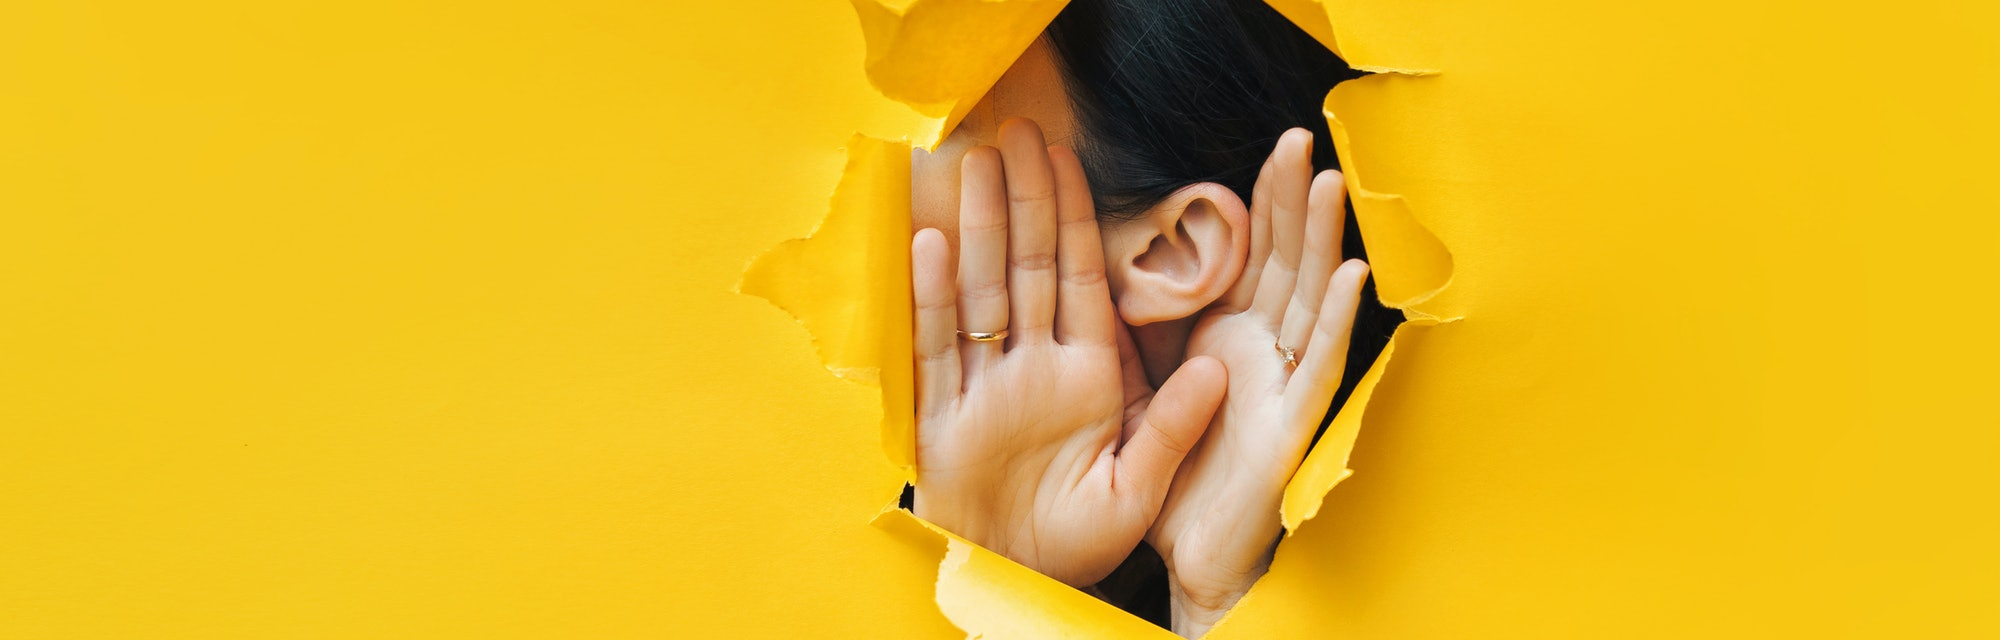 Female ear and hands close-up. Copy space. Torn paper, yellow background. The concept of eavesdropping, espionage, gossip and the yellow press.